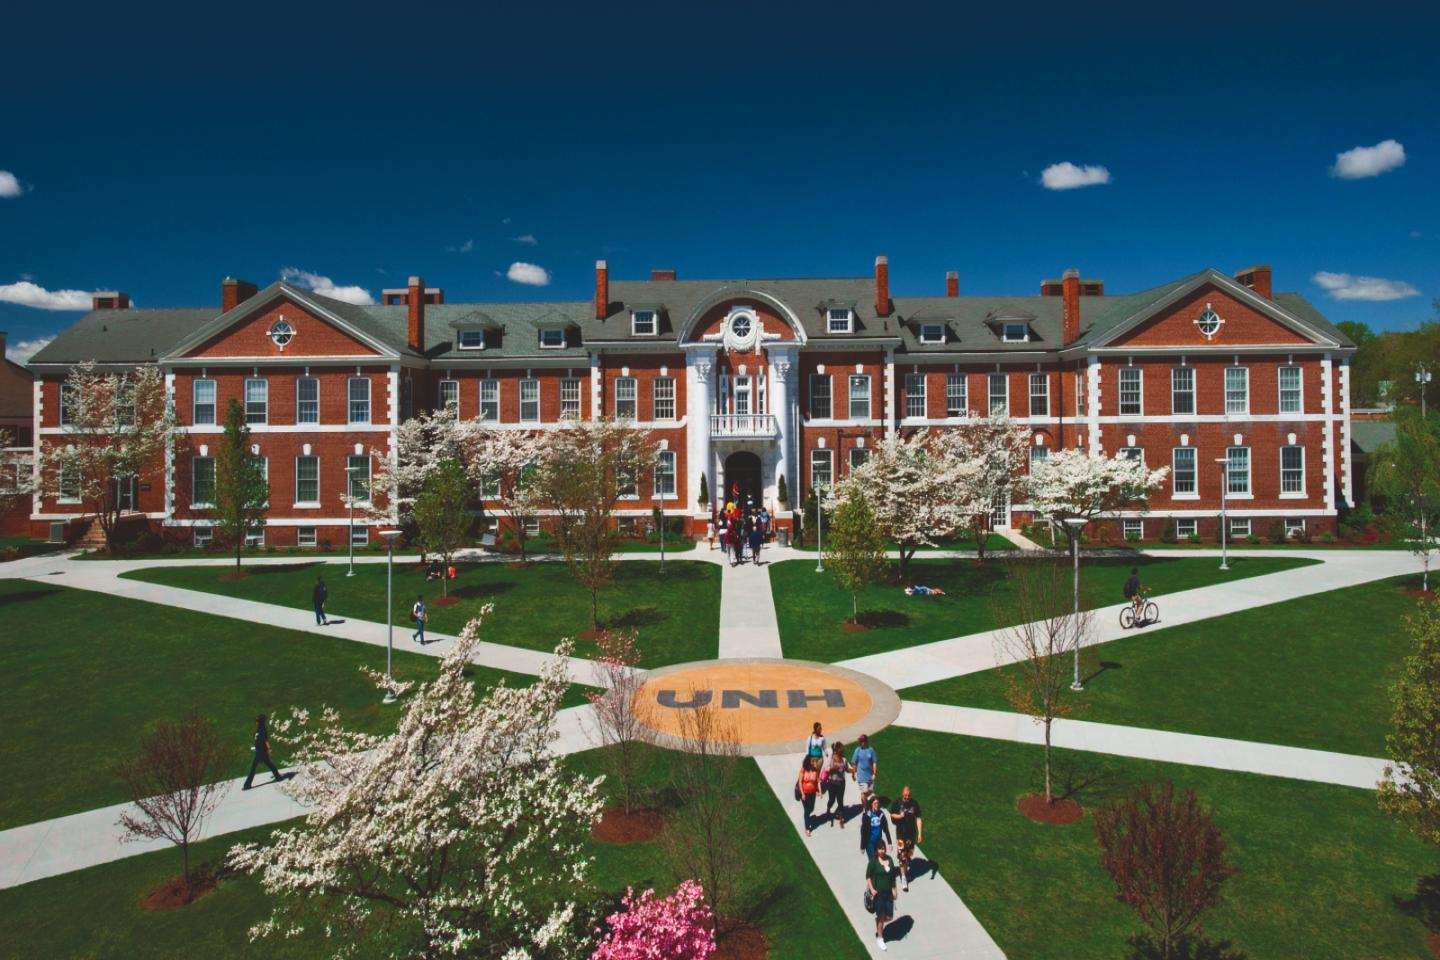 Restaurants and Cafés for Students at the UNH